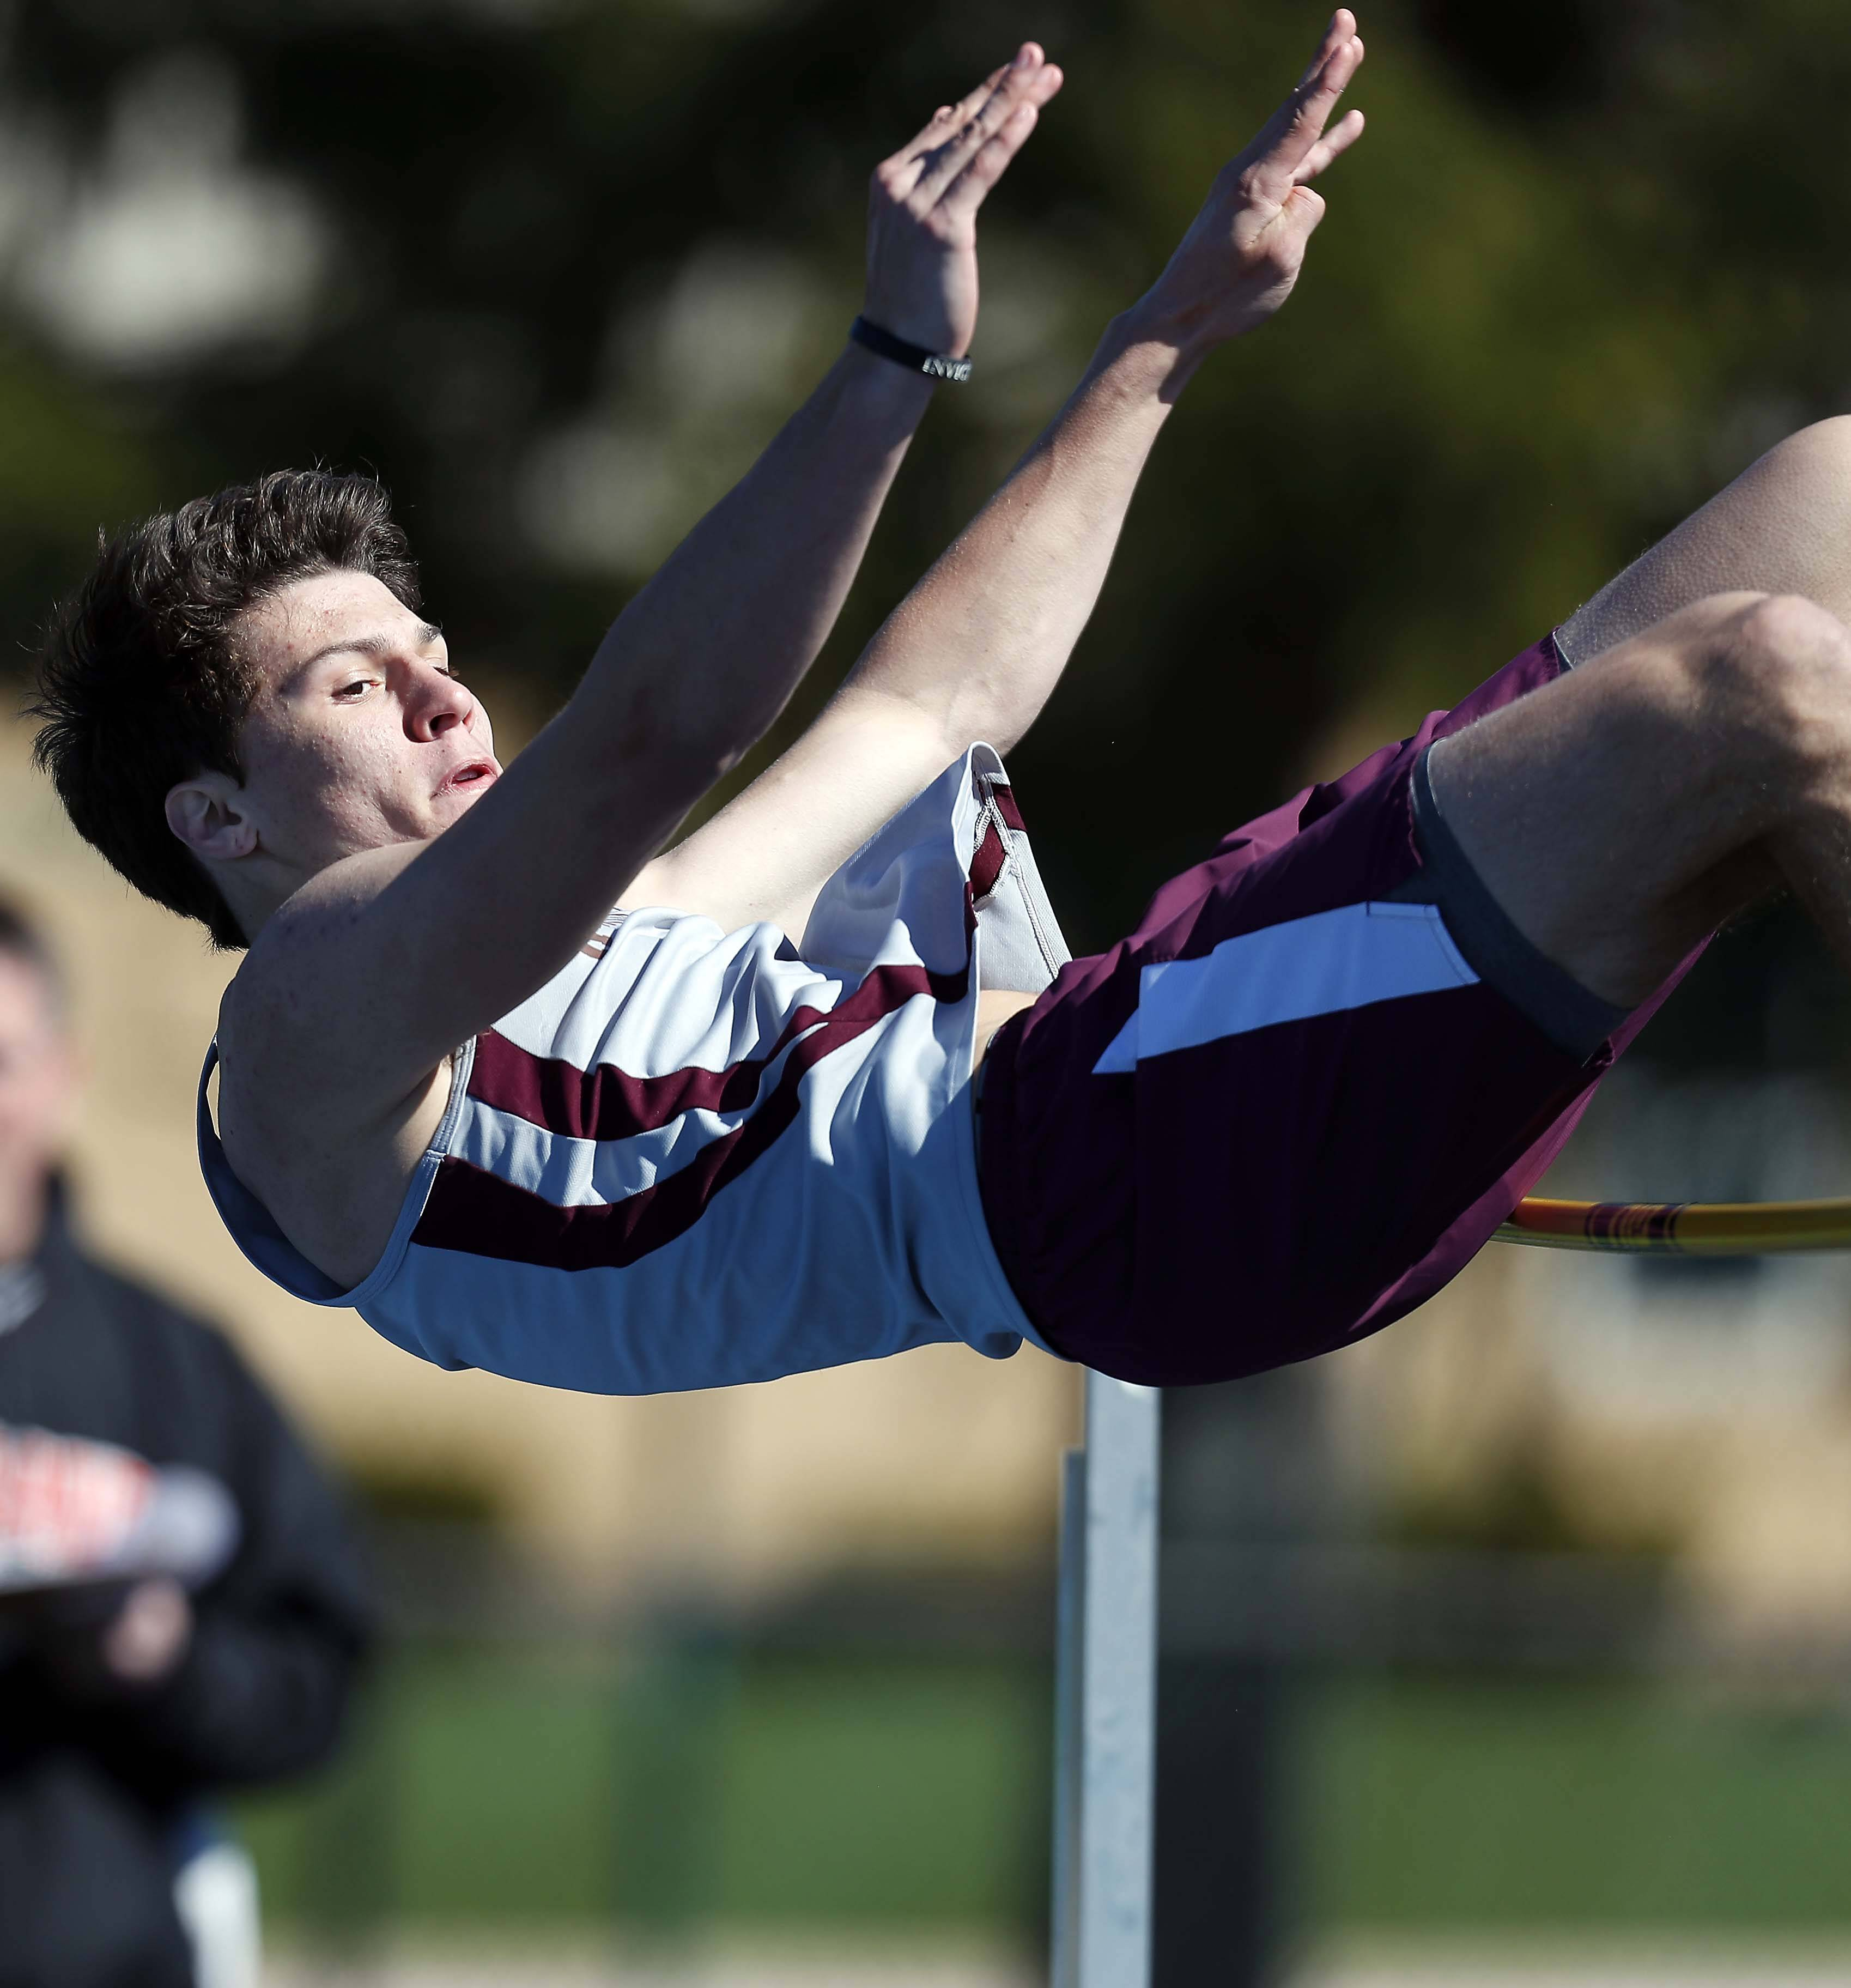 Micah Nichols of Wheaton Academy in the high jump Saturday at the Kaneland Peterson Prep Track Meet in Maple Park.